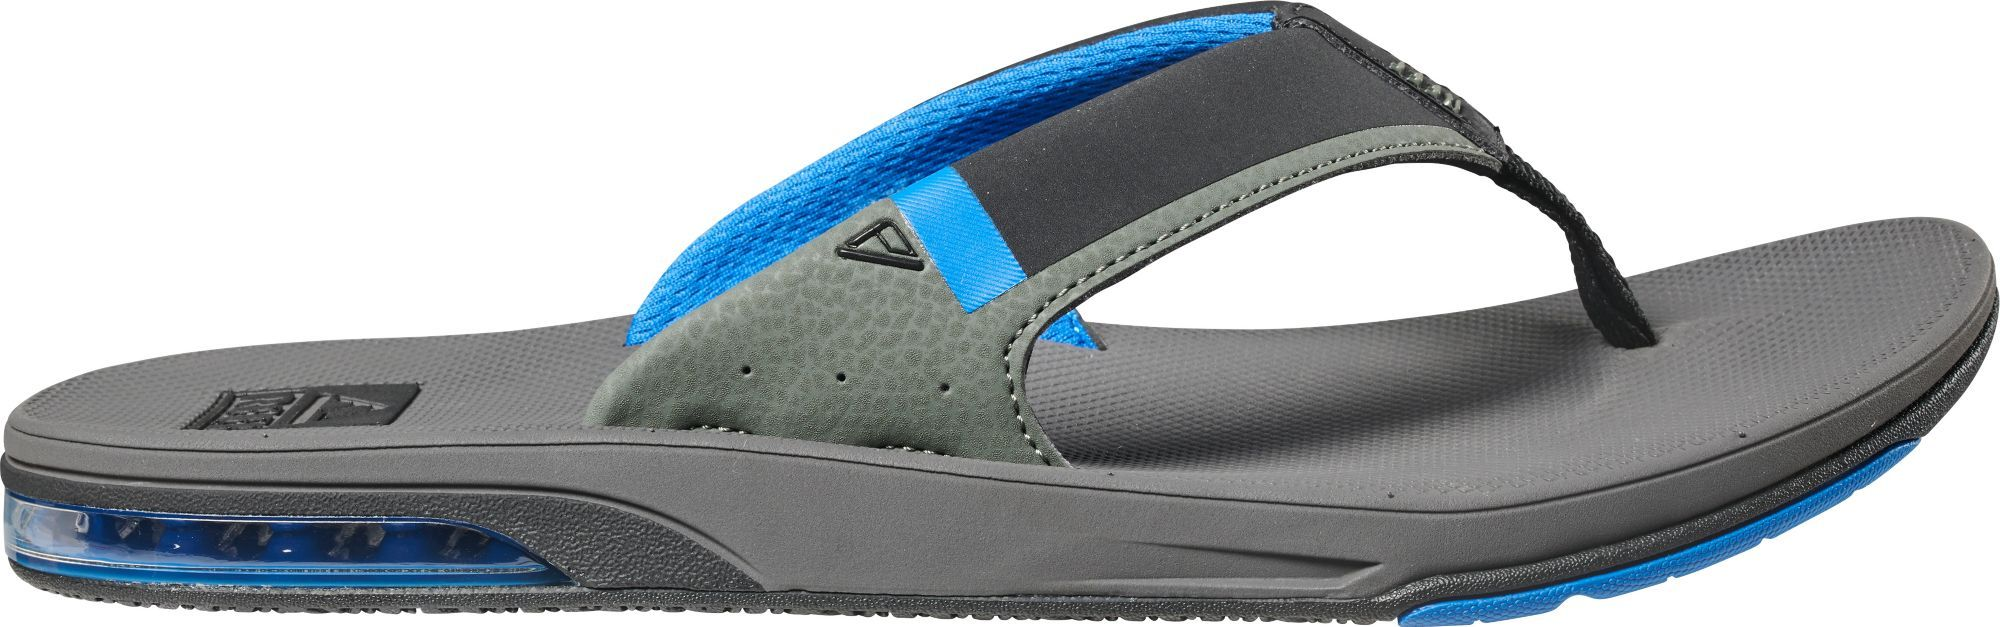 Reef Men's Fanning Low Flip Flops in 2019 | Flip flop shoes